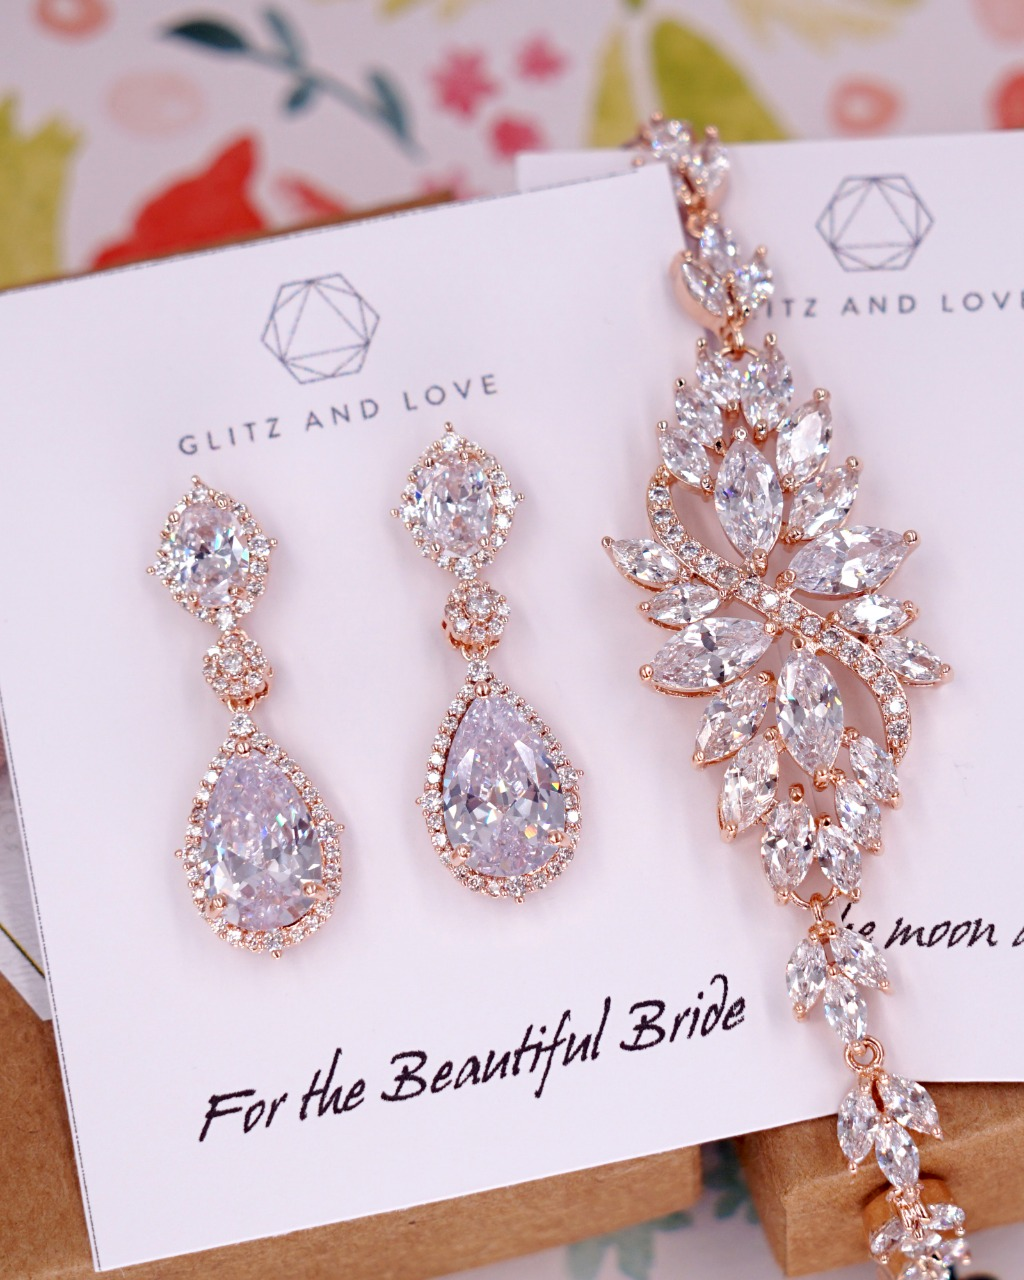 Rose Gold Fancy CZ jewelry set, earrings and bracelet, for brides, bridesmaids, mother of bride and groom, bridal shower gifts, wedding